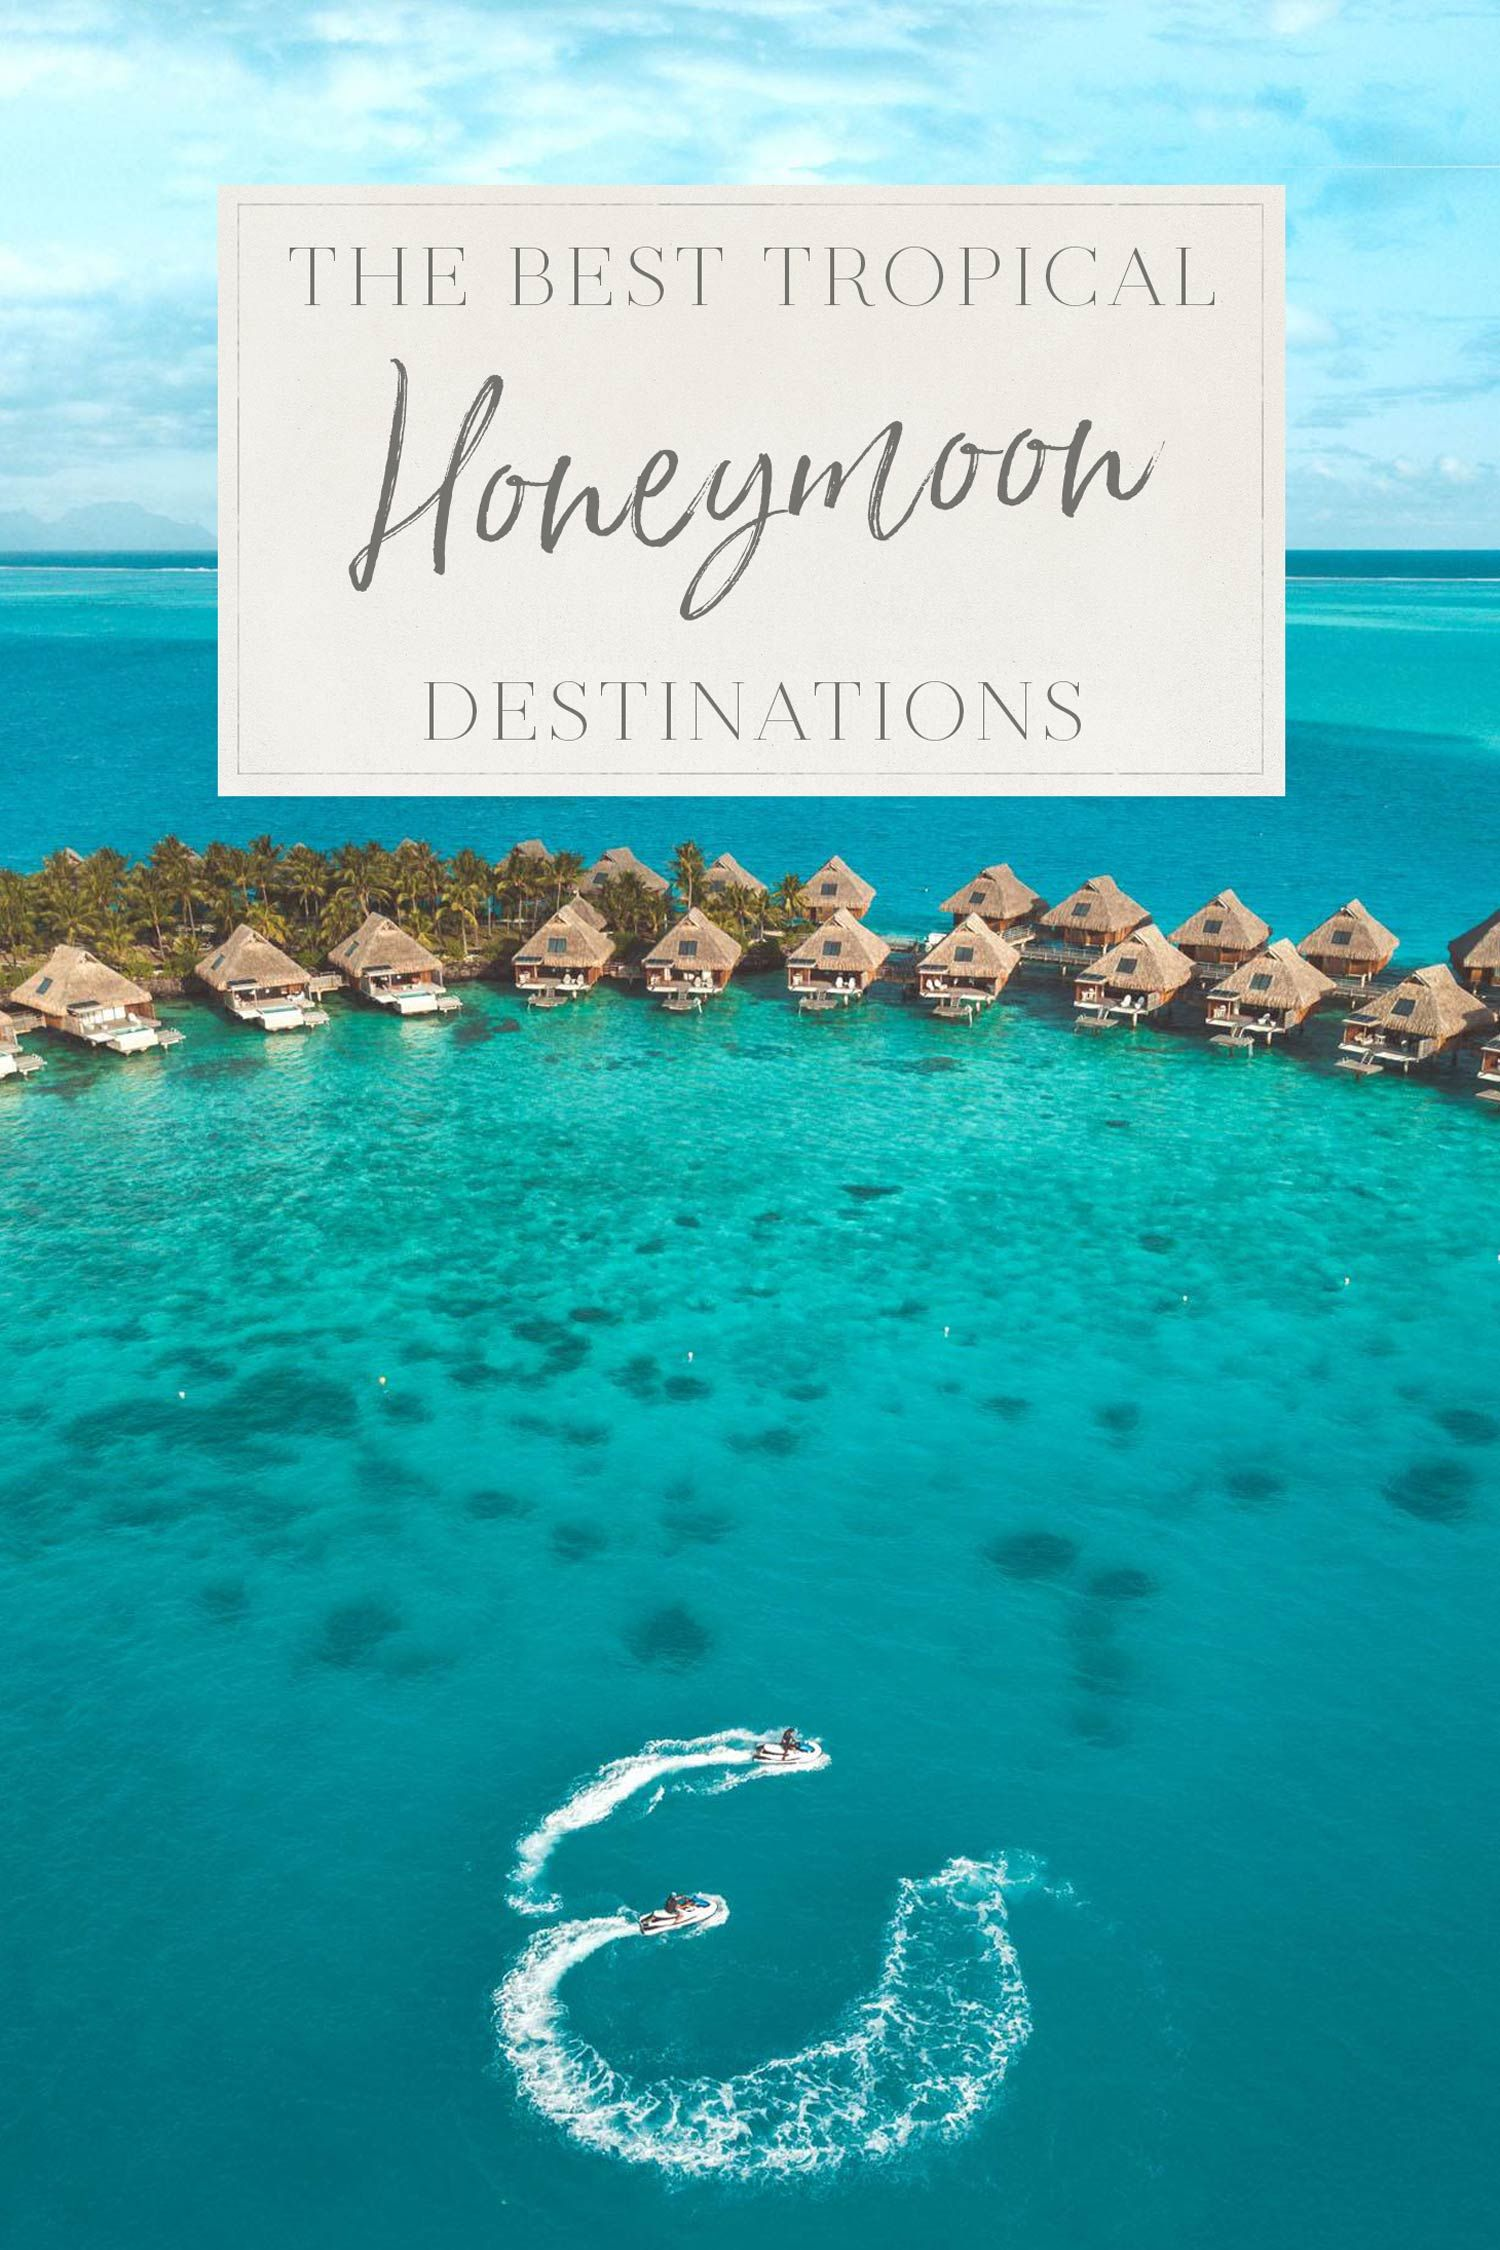 The Best Tropical Honeymoon Destinations